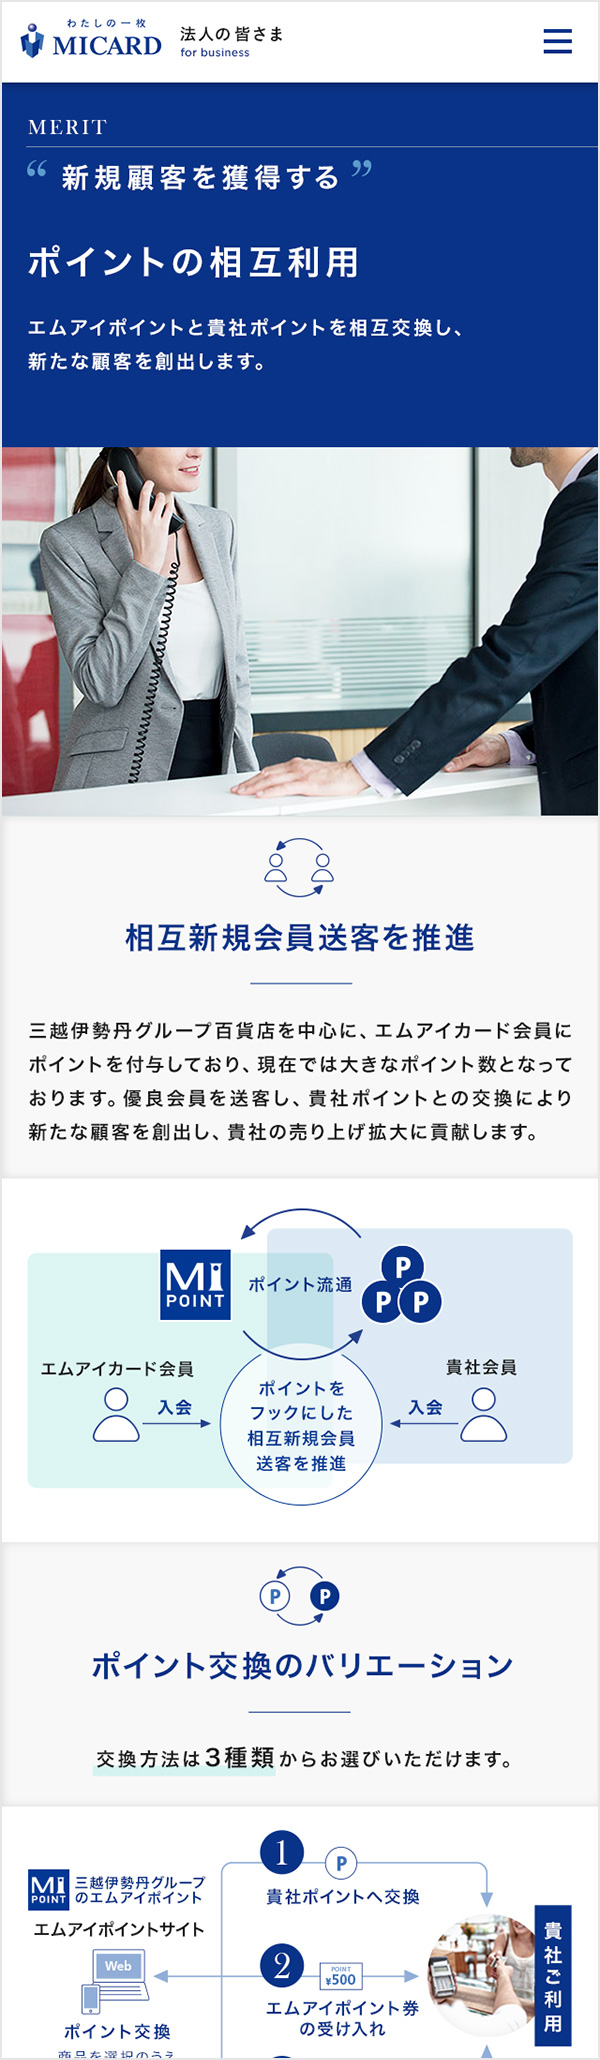 MICARD - for Business